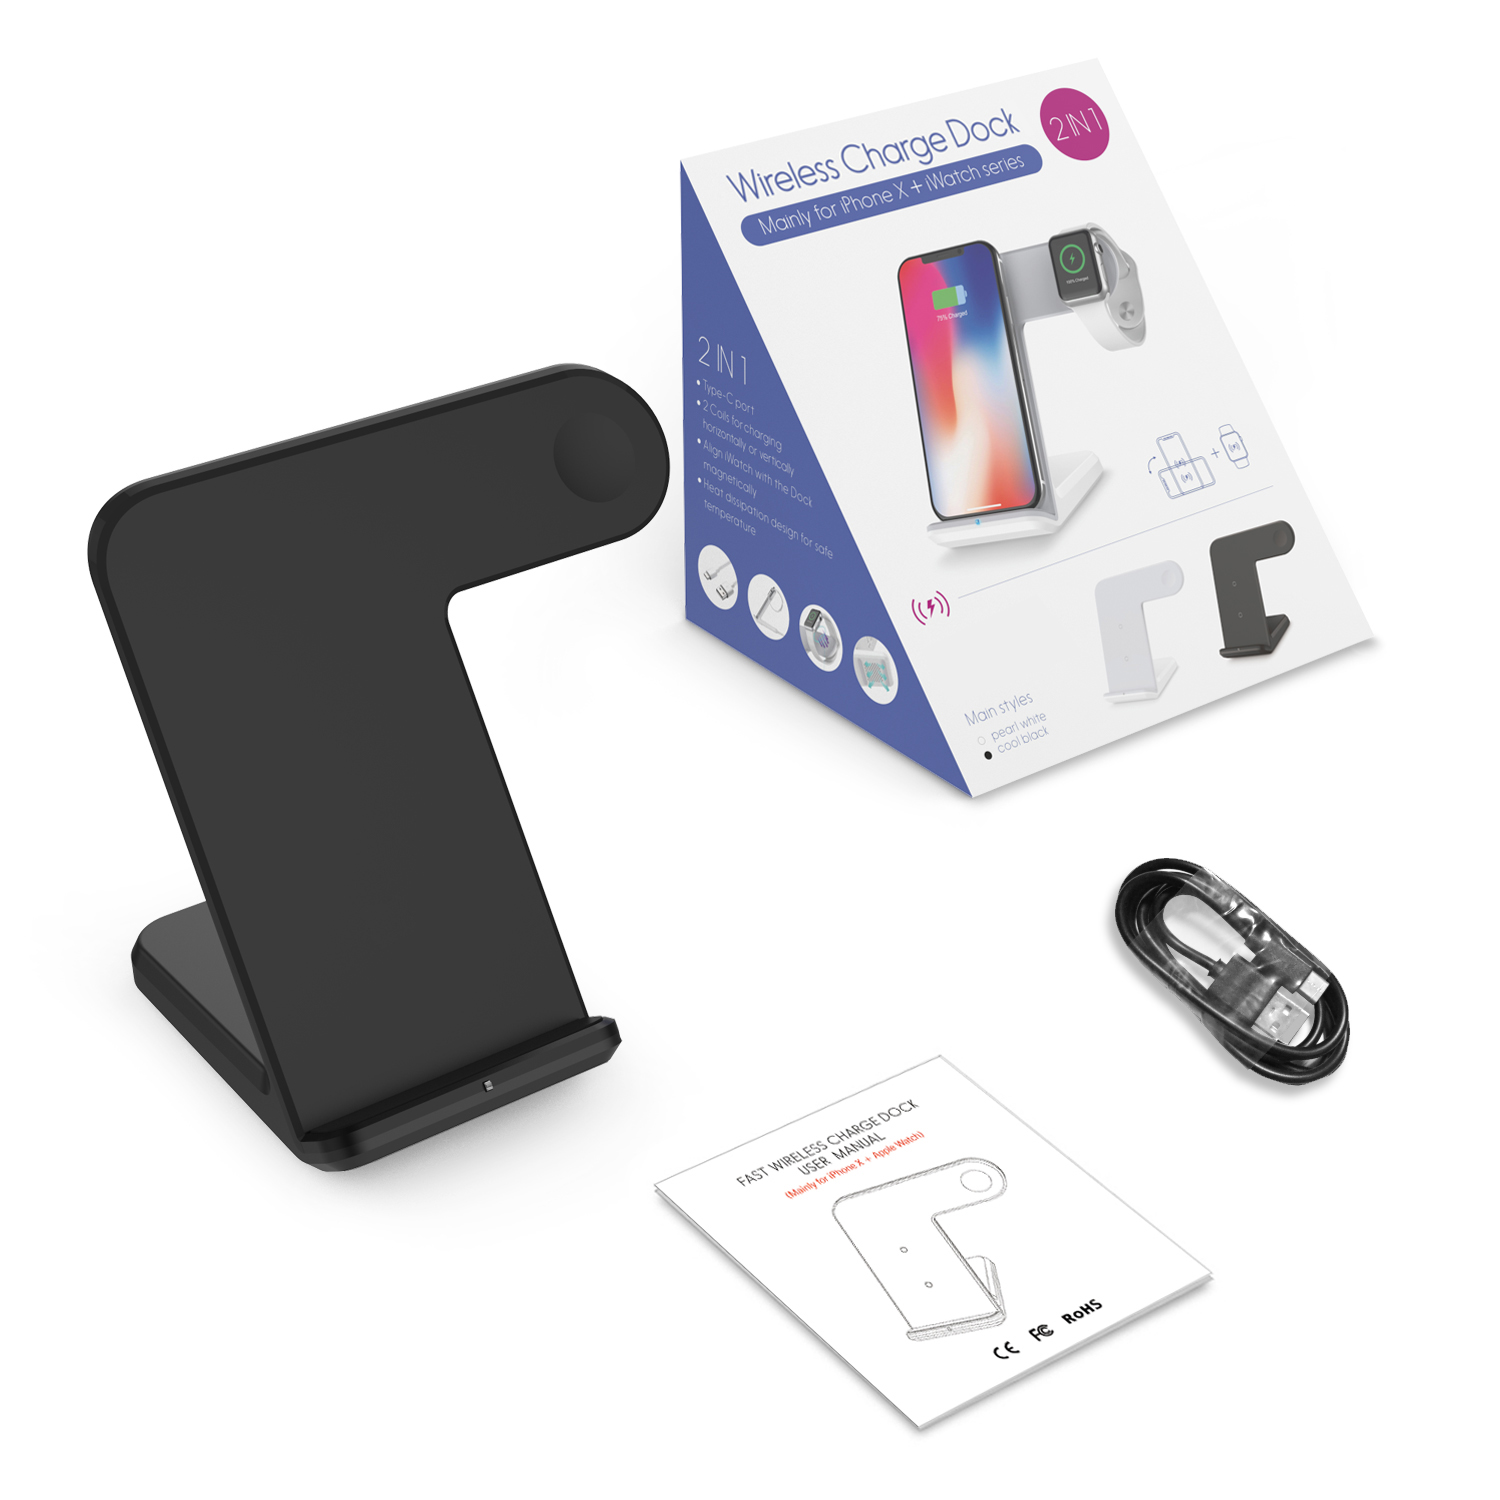 2in1 qi fast wireless charger ladestation ladeger t f r. Black Bedroom Furniture Sets. Home Design Ideas